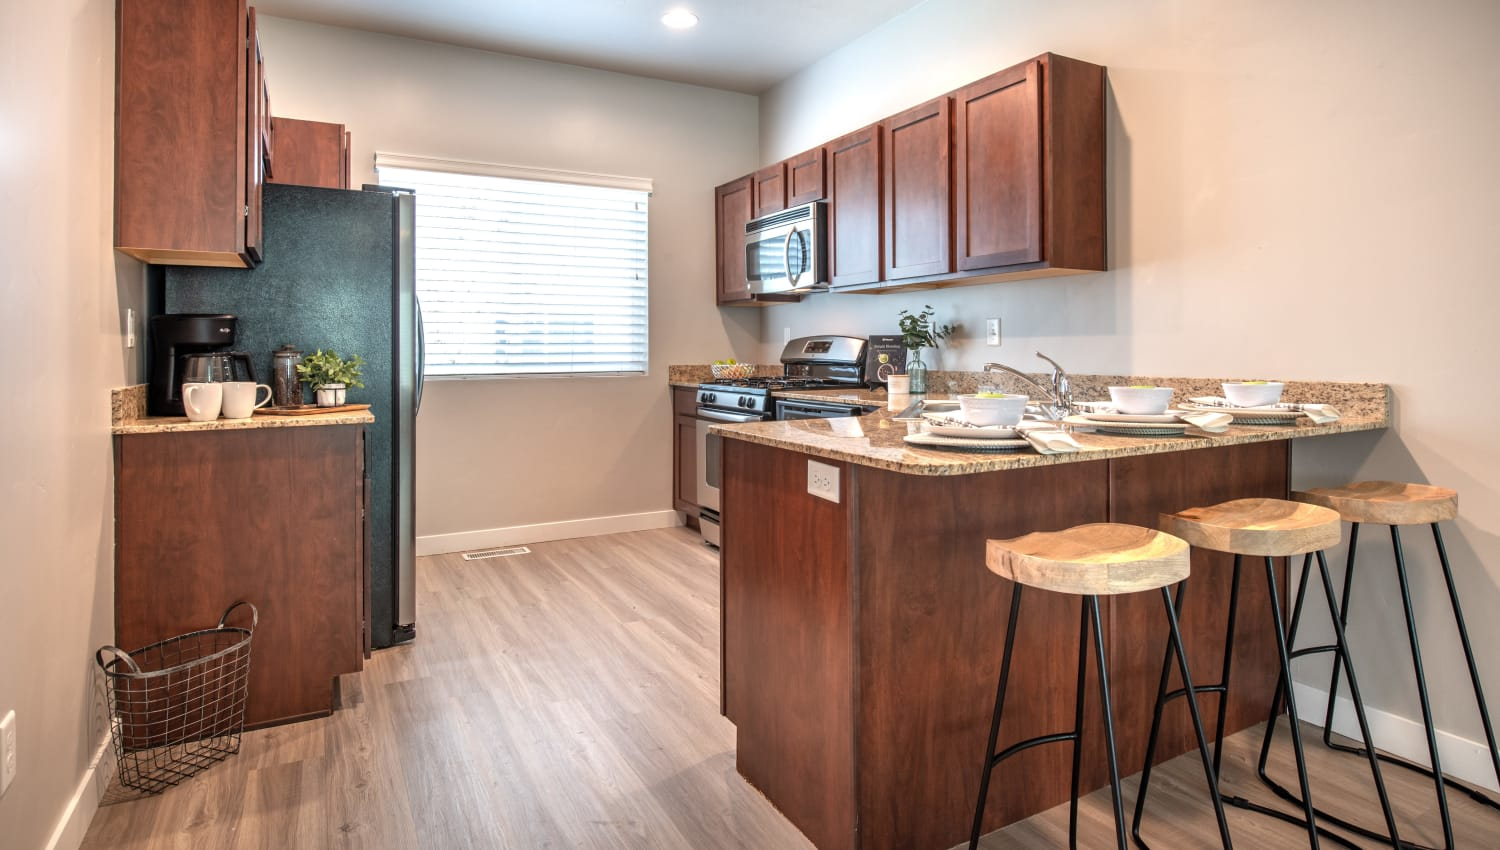 Kitchen at Olympus at the District in South Jordan, Utah features breakfast bar seating area